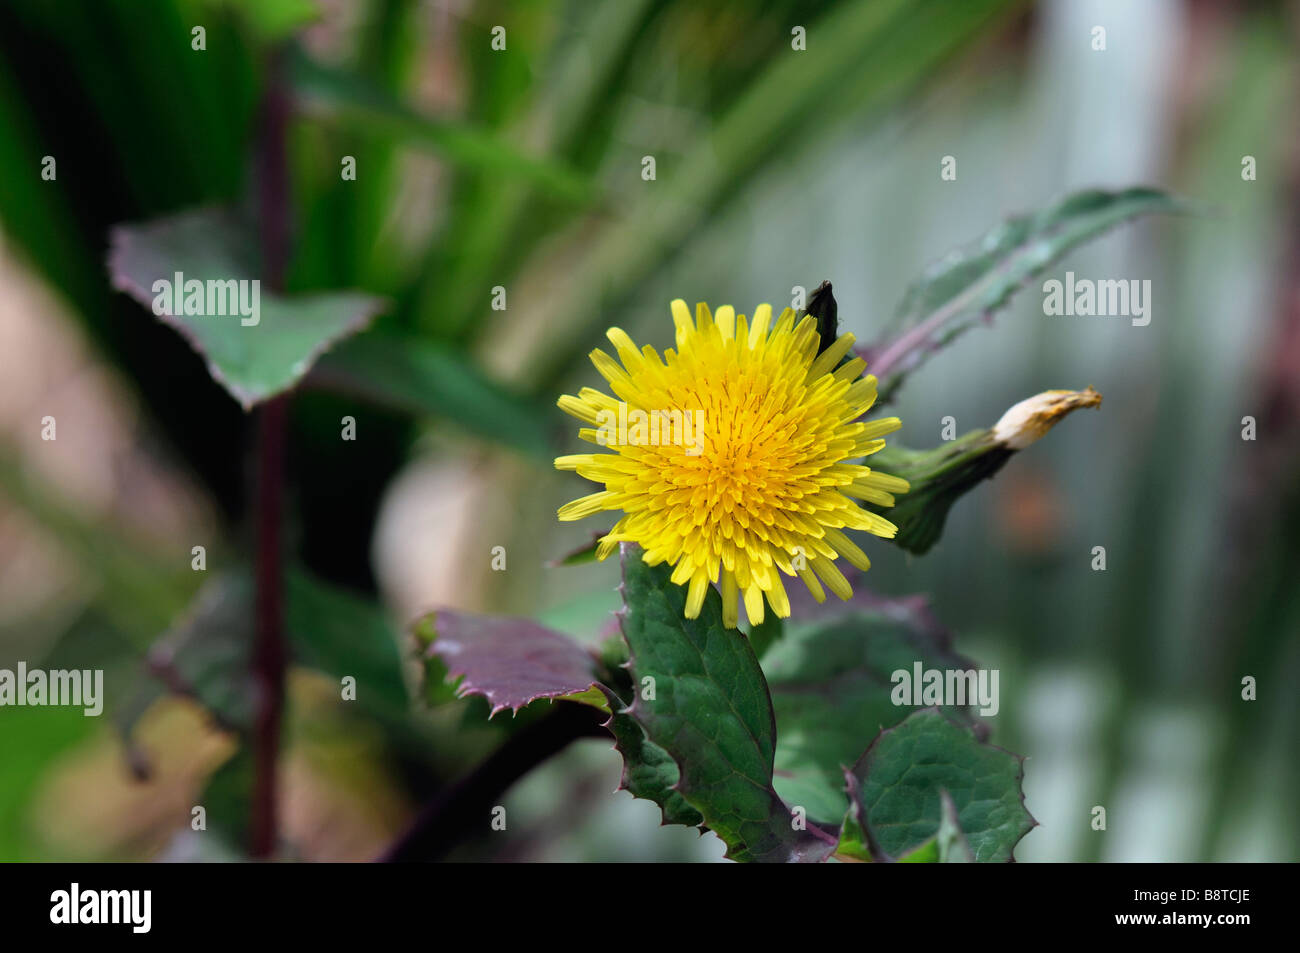 Dandelion Like Flower Stock Photos Dandelion Like Flower Stock